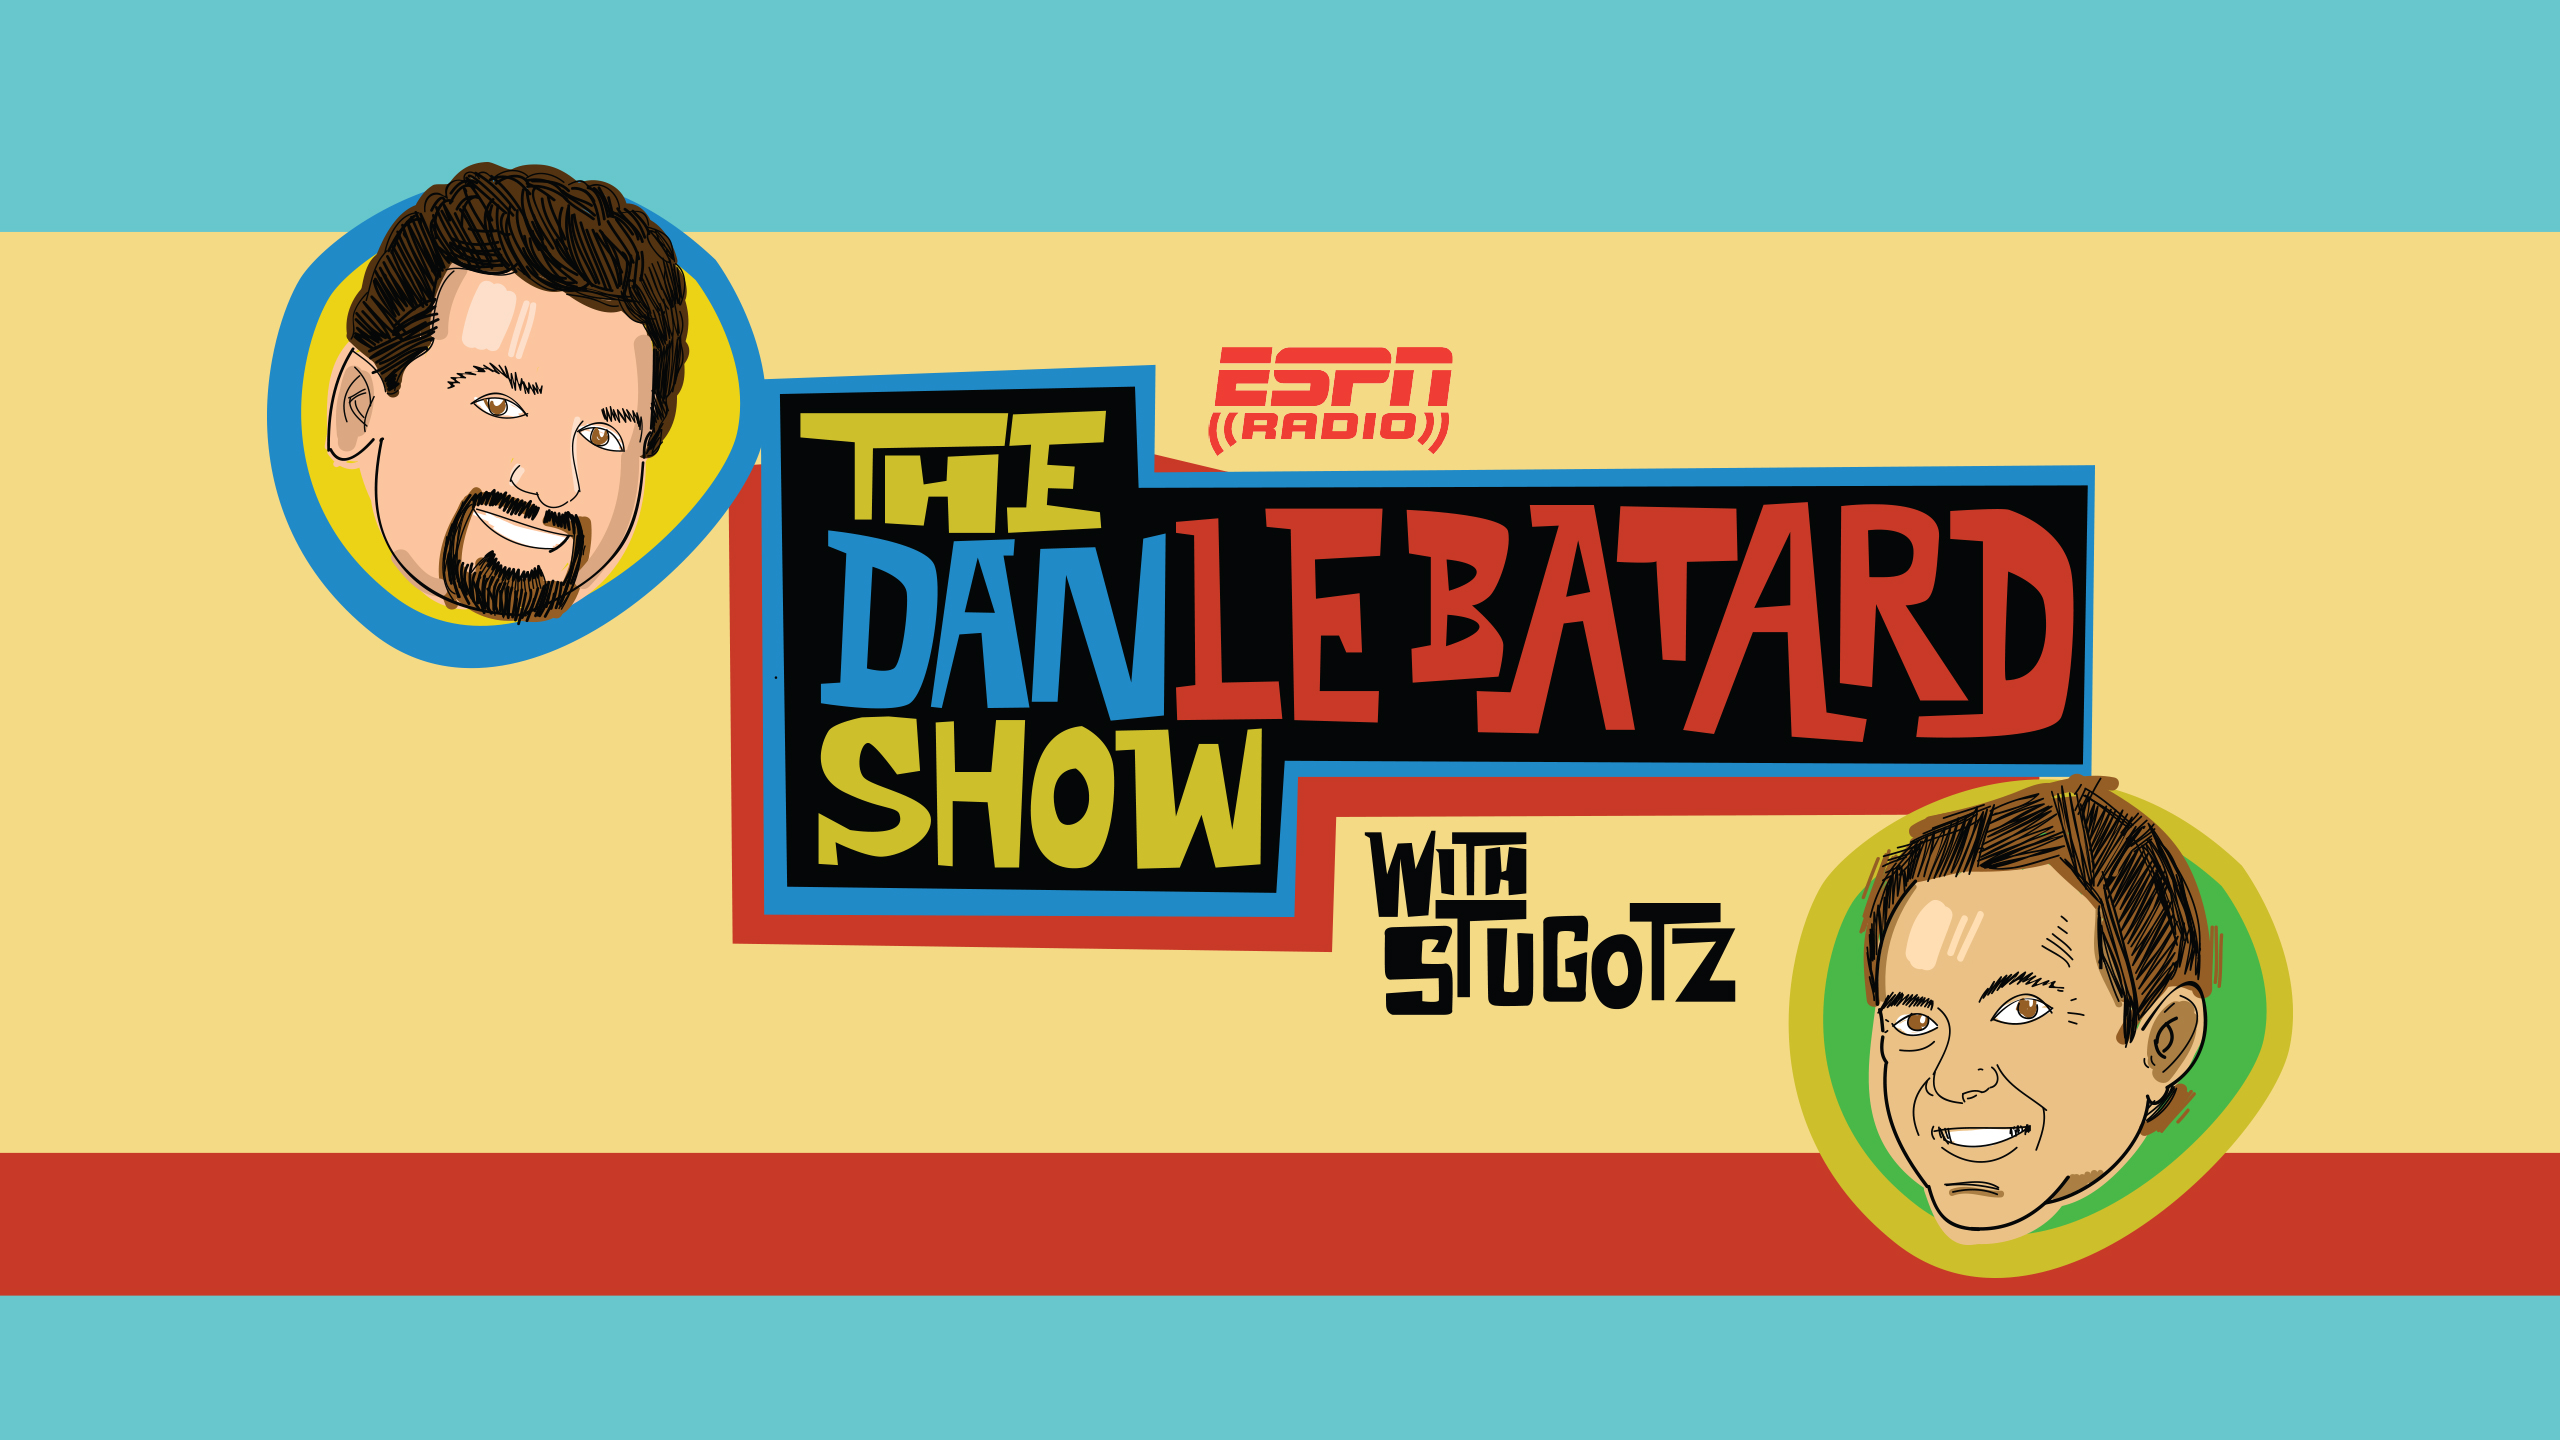 Fri, 11/16 - The Dan Le Batard Show with Stugotz Presented by Progressive